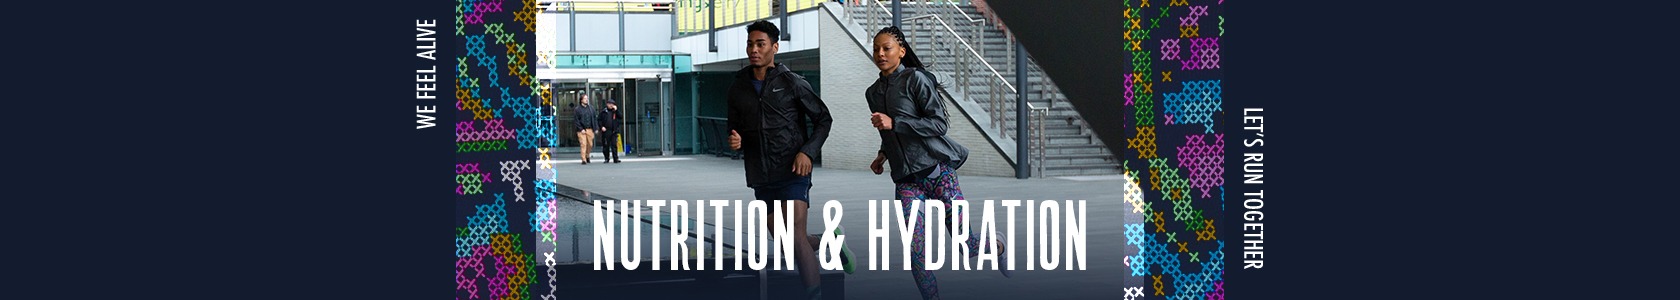 Running Nutrition & Hydration